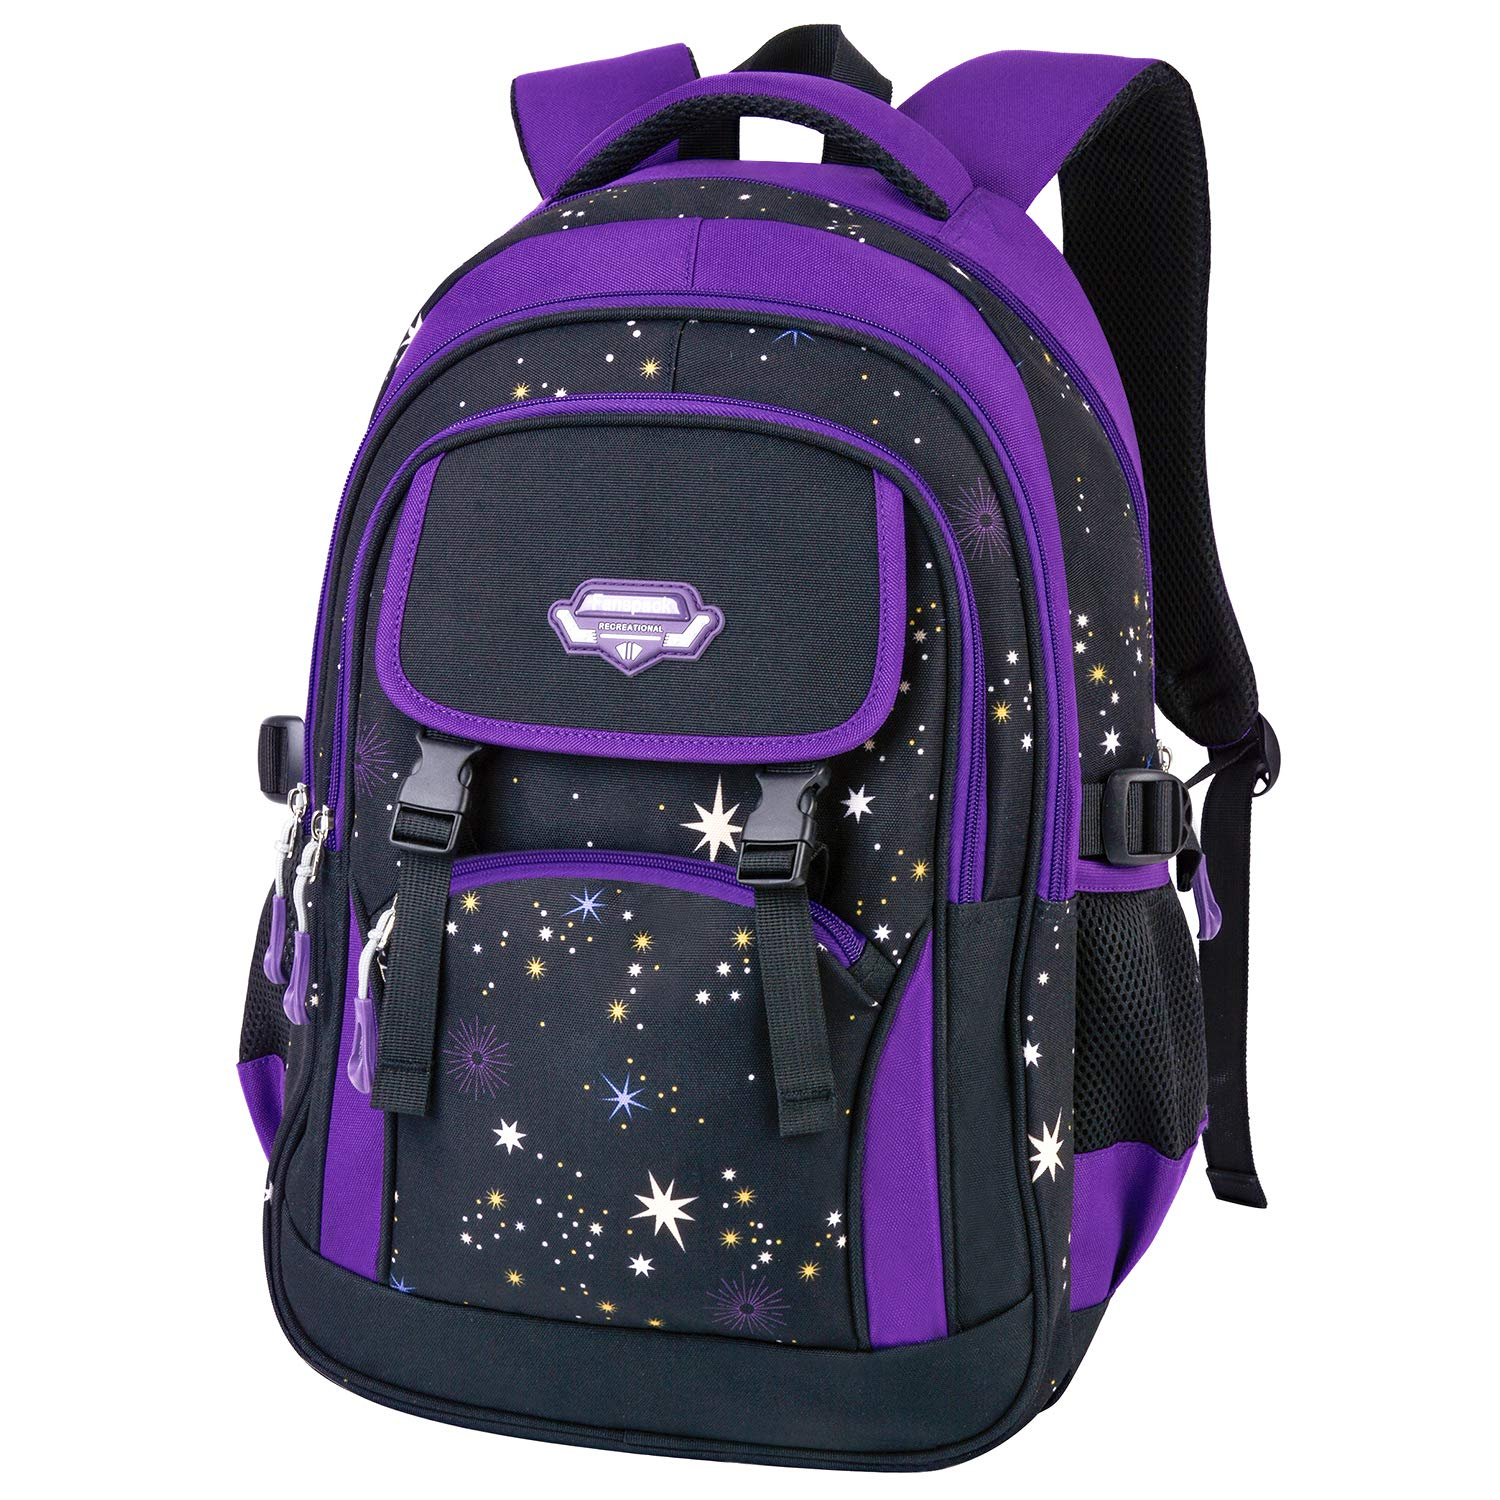 Fanspack Cartable Fille Sac a Dos Fille Primaire Cartable Fille Primaire Sac Scolaire Fille Cartable Fille College